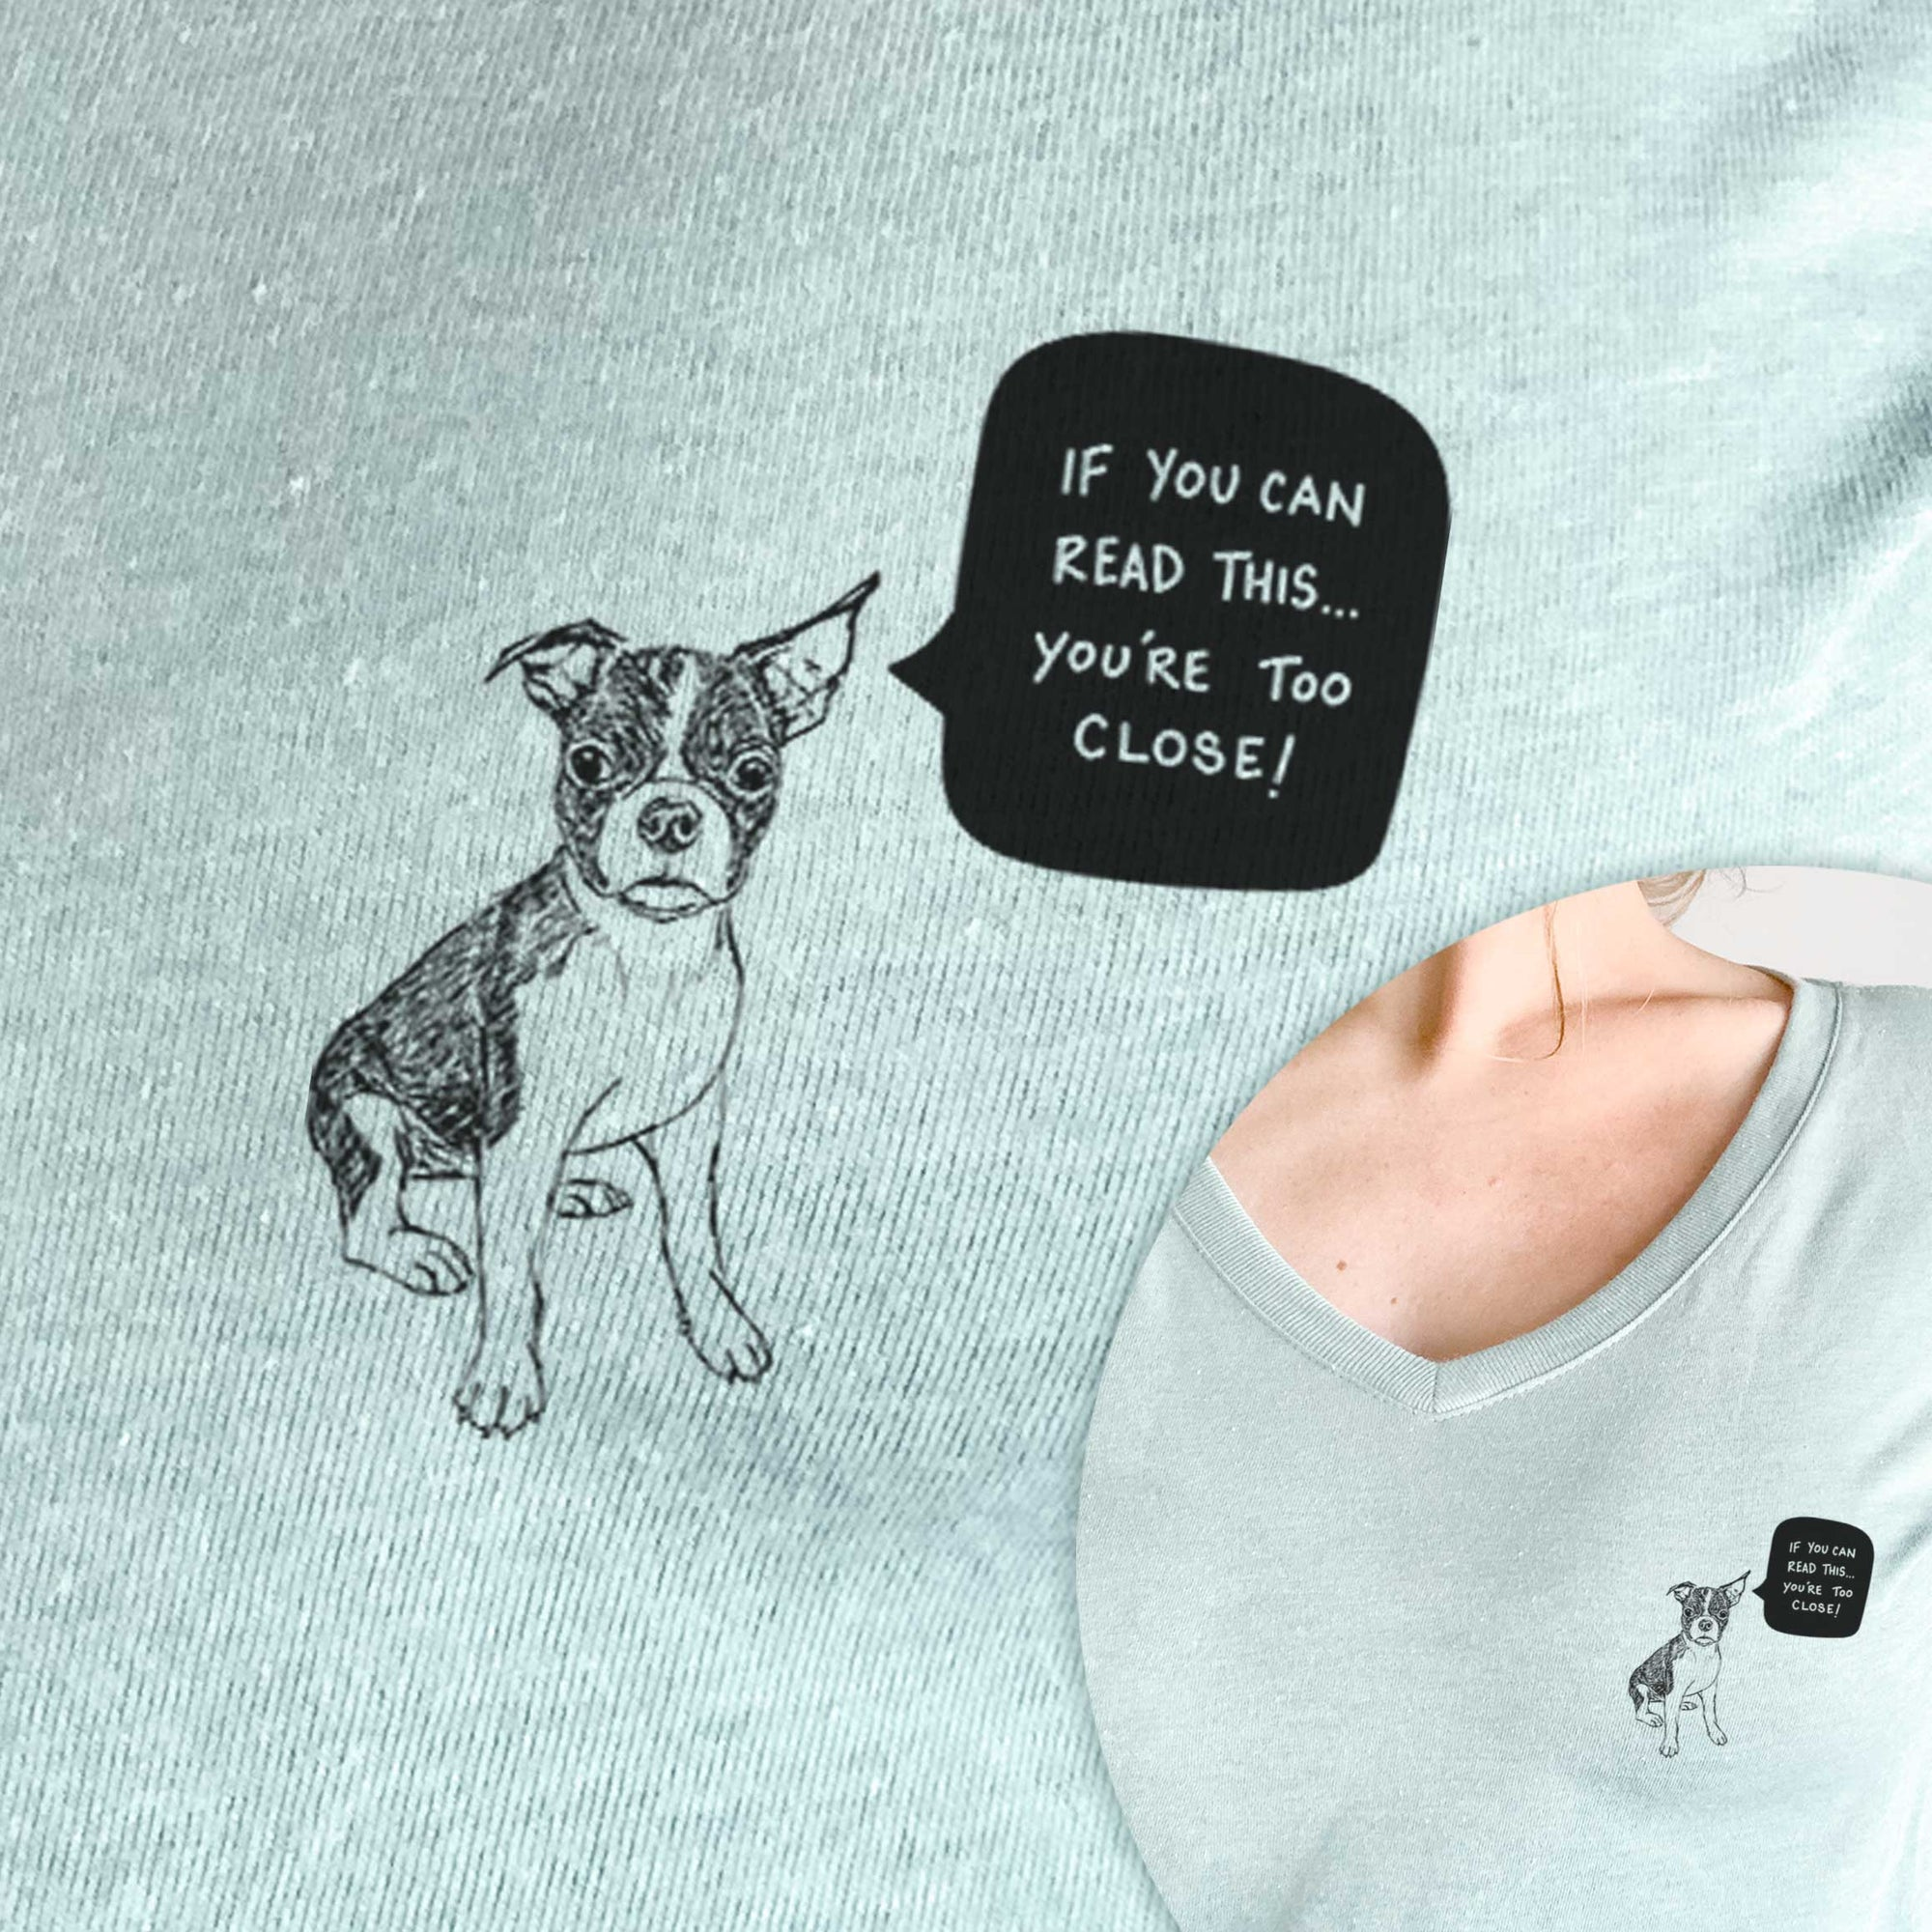 Too Close Boston Terrier Puppy  - Women's Perfect V-neck Shirt